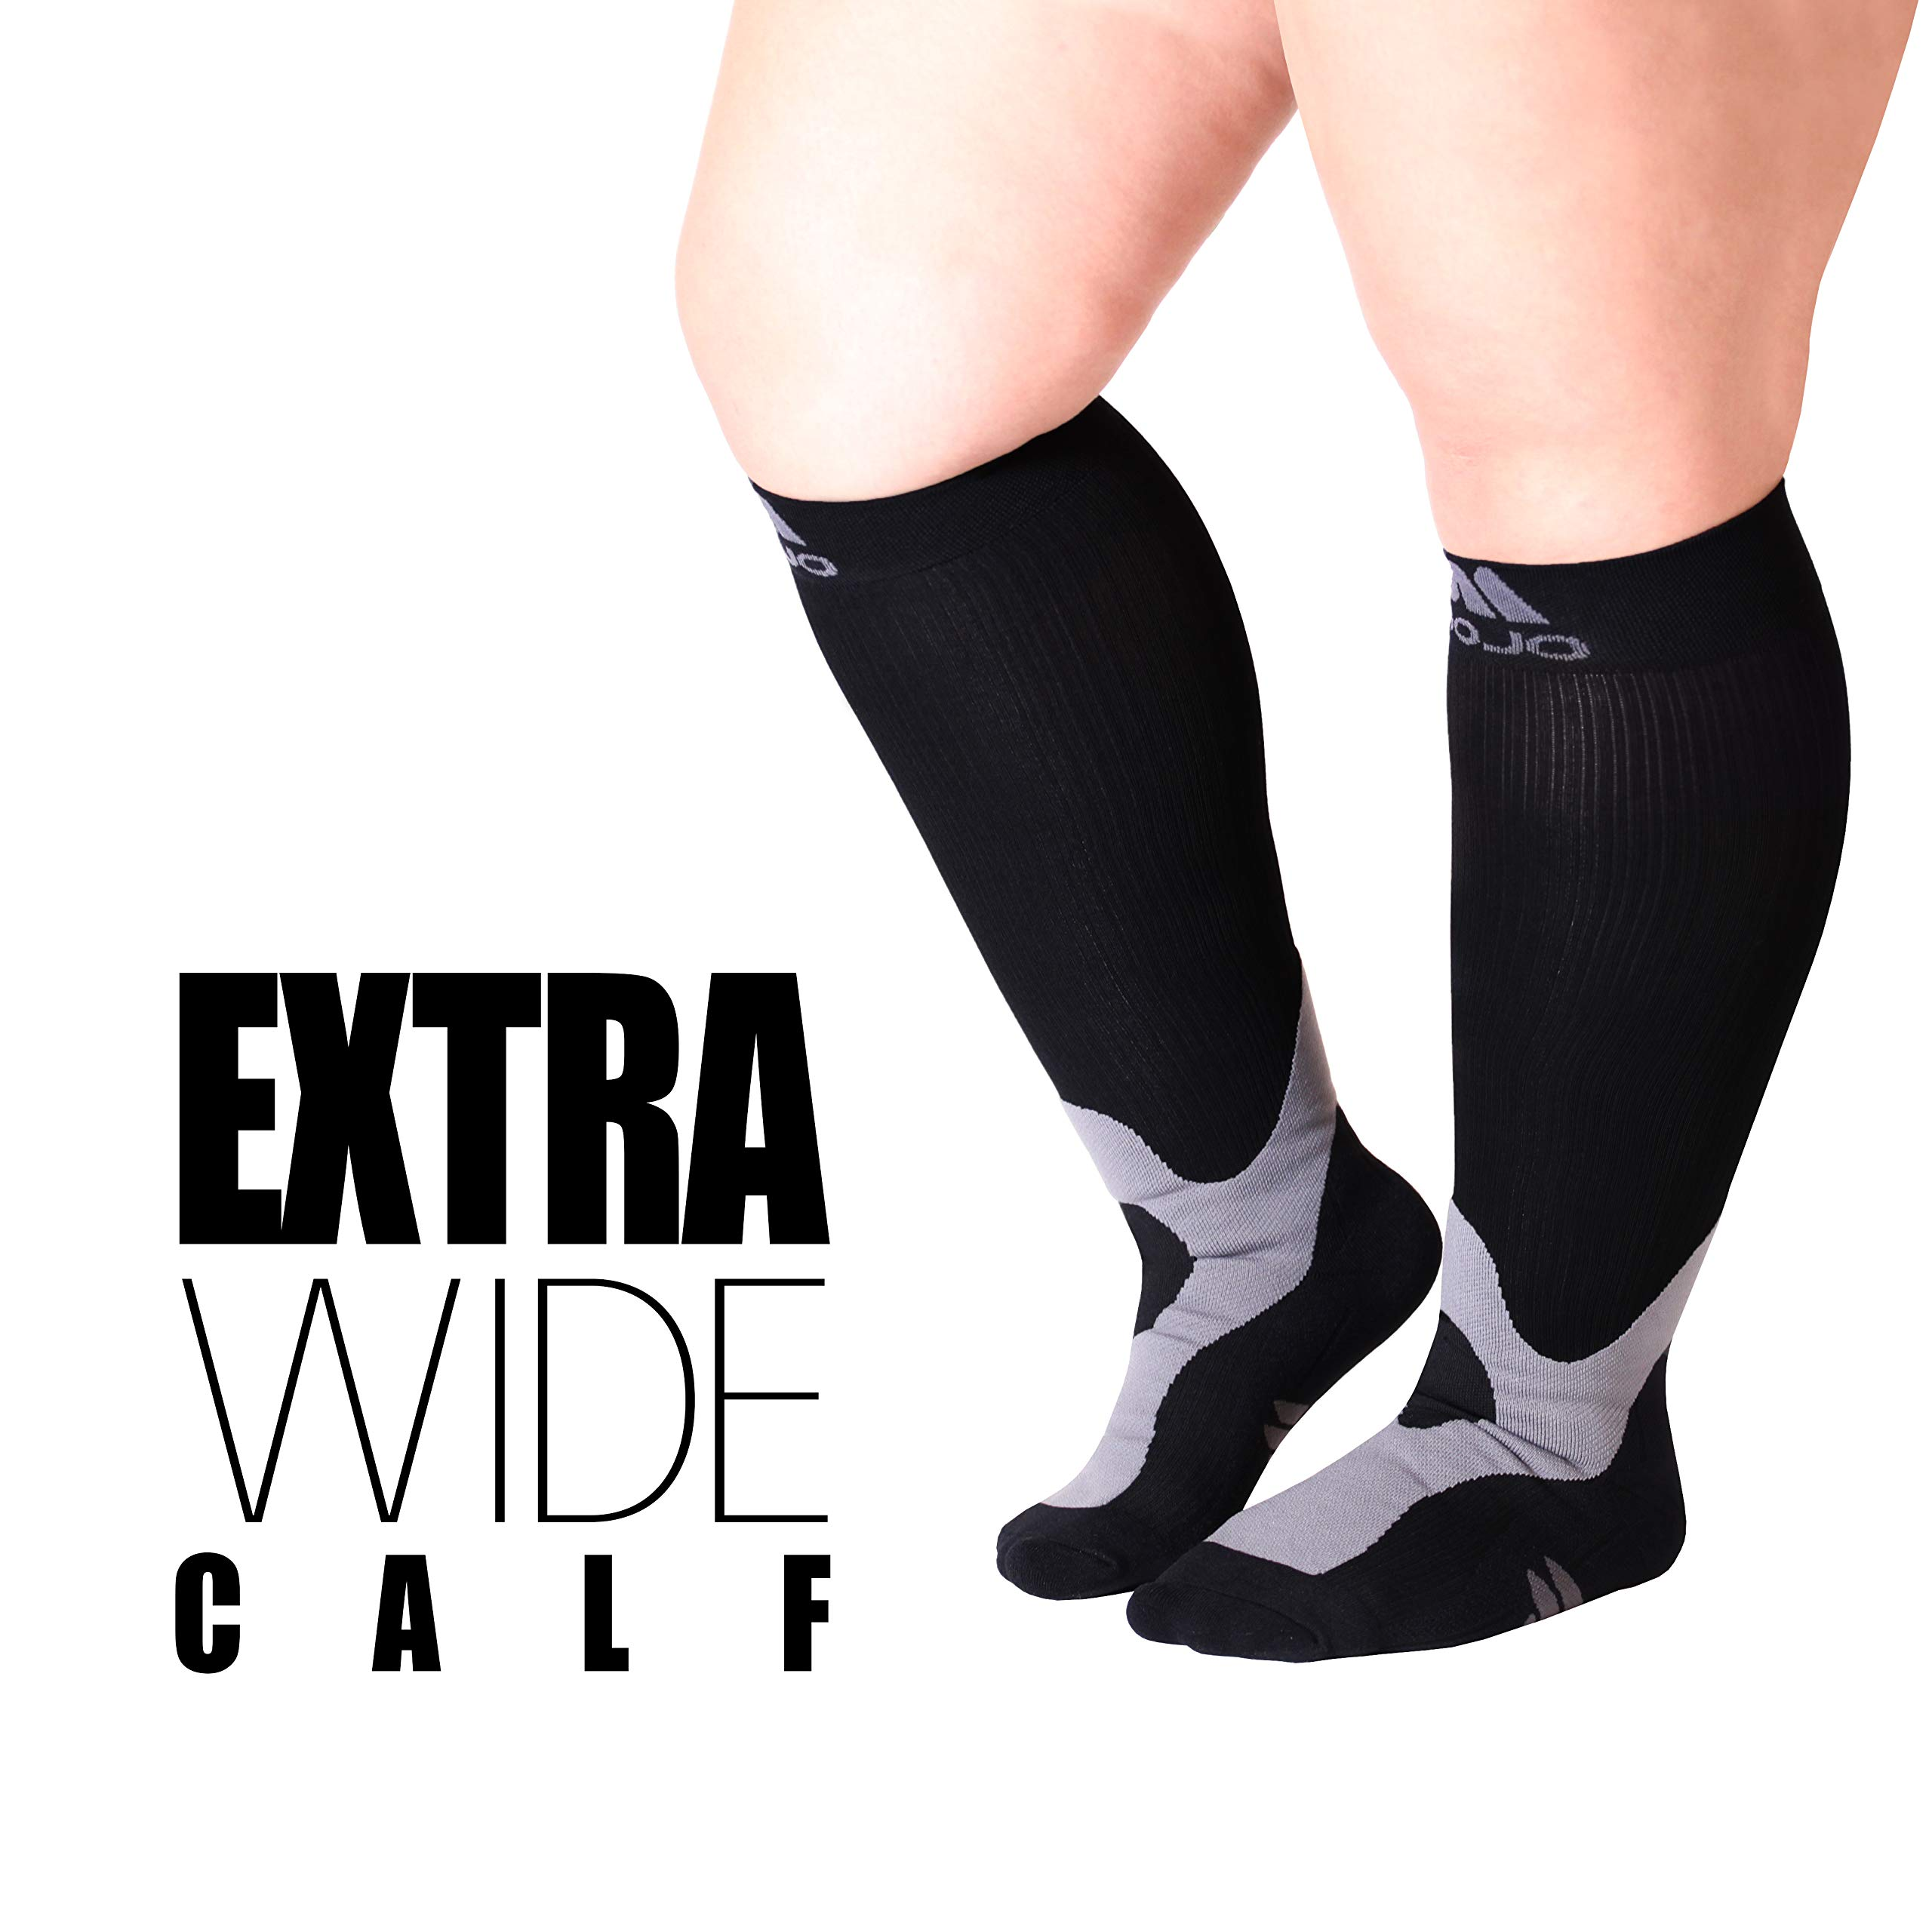 07d03e7f7 Mojo Compression Socks™ 5XL (XXXXXL) Compression Socks for Very Large  Ankles and Wide